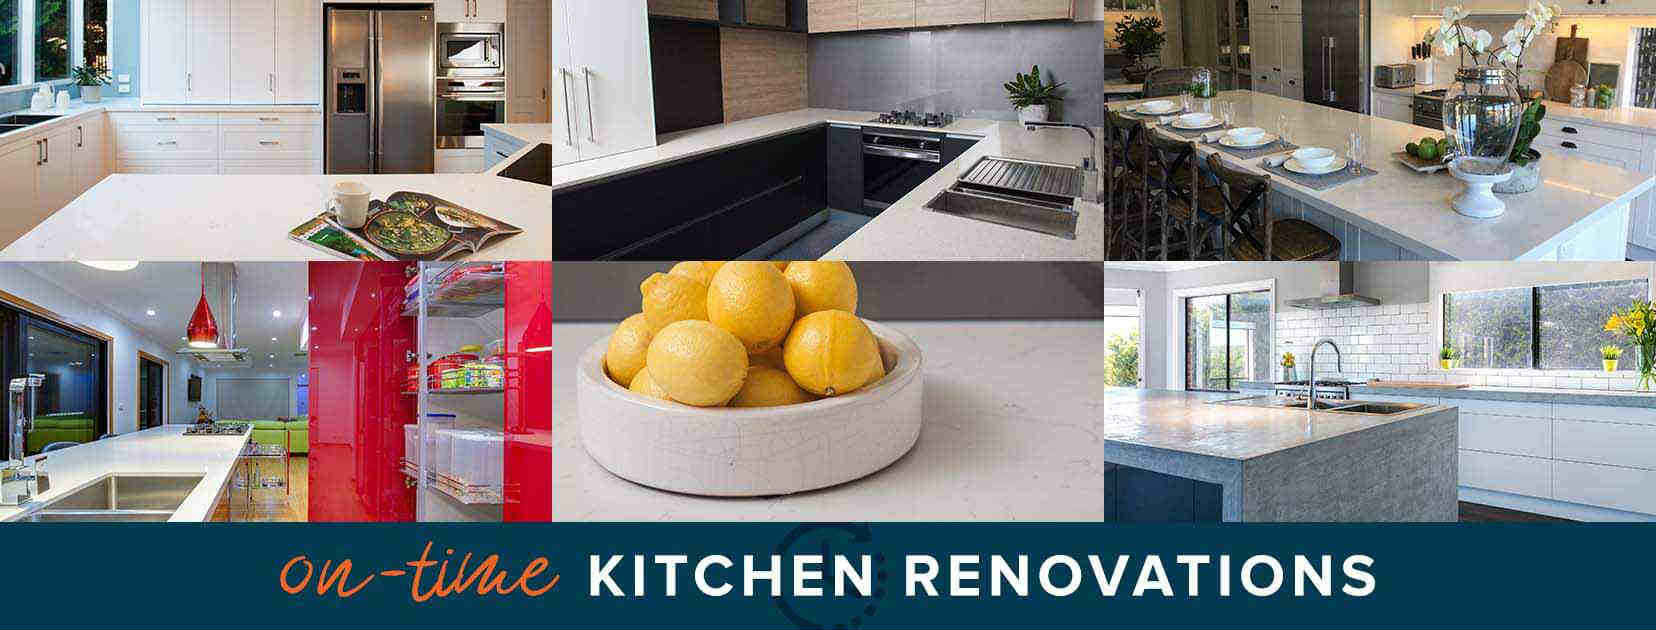 Zesta On-Time Kitchen Renovatons